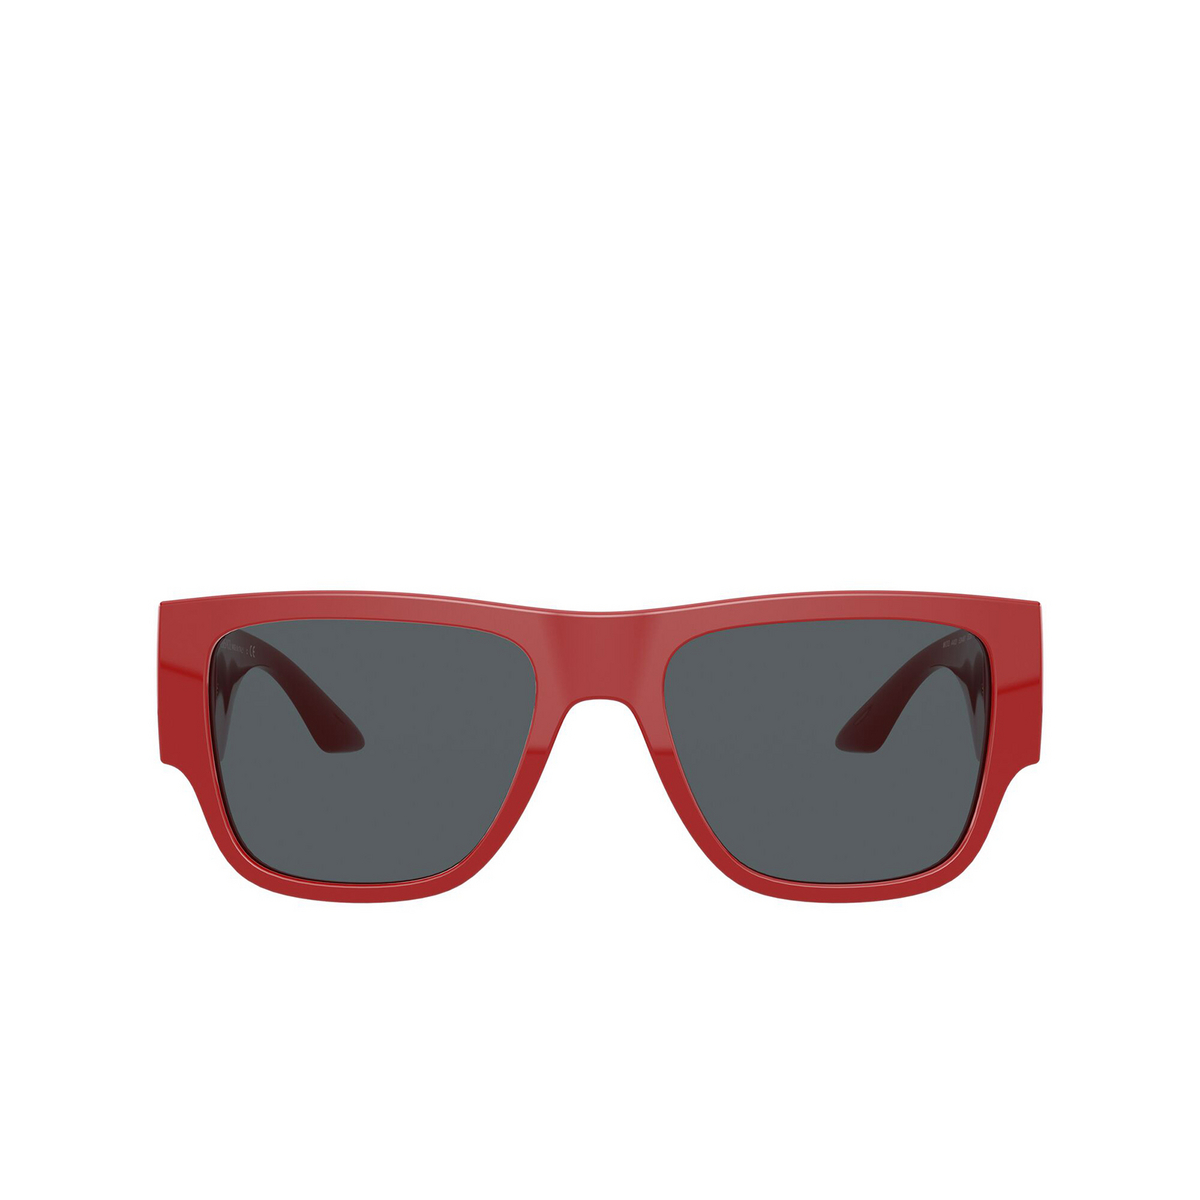 Versace® Square Sunglasses: VE4403 color Red 534487 - front view.